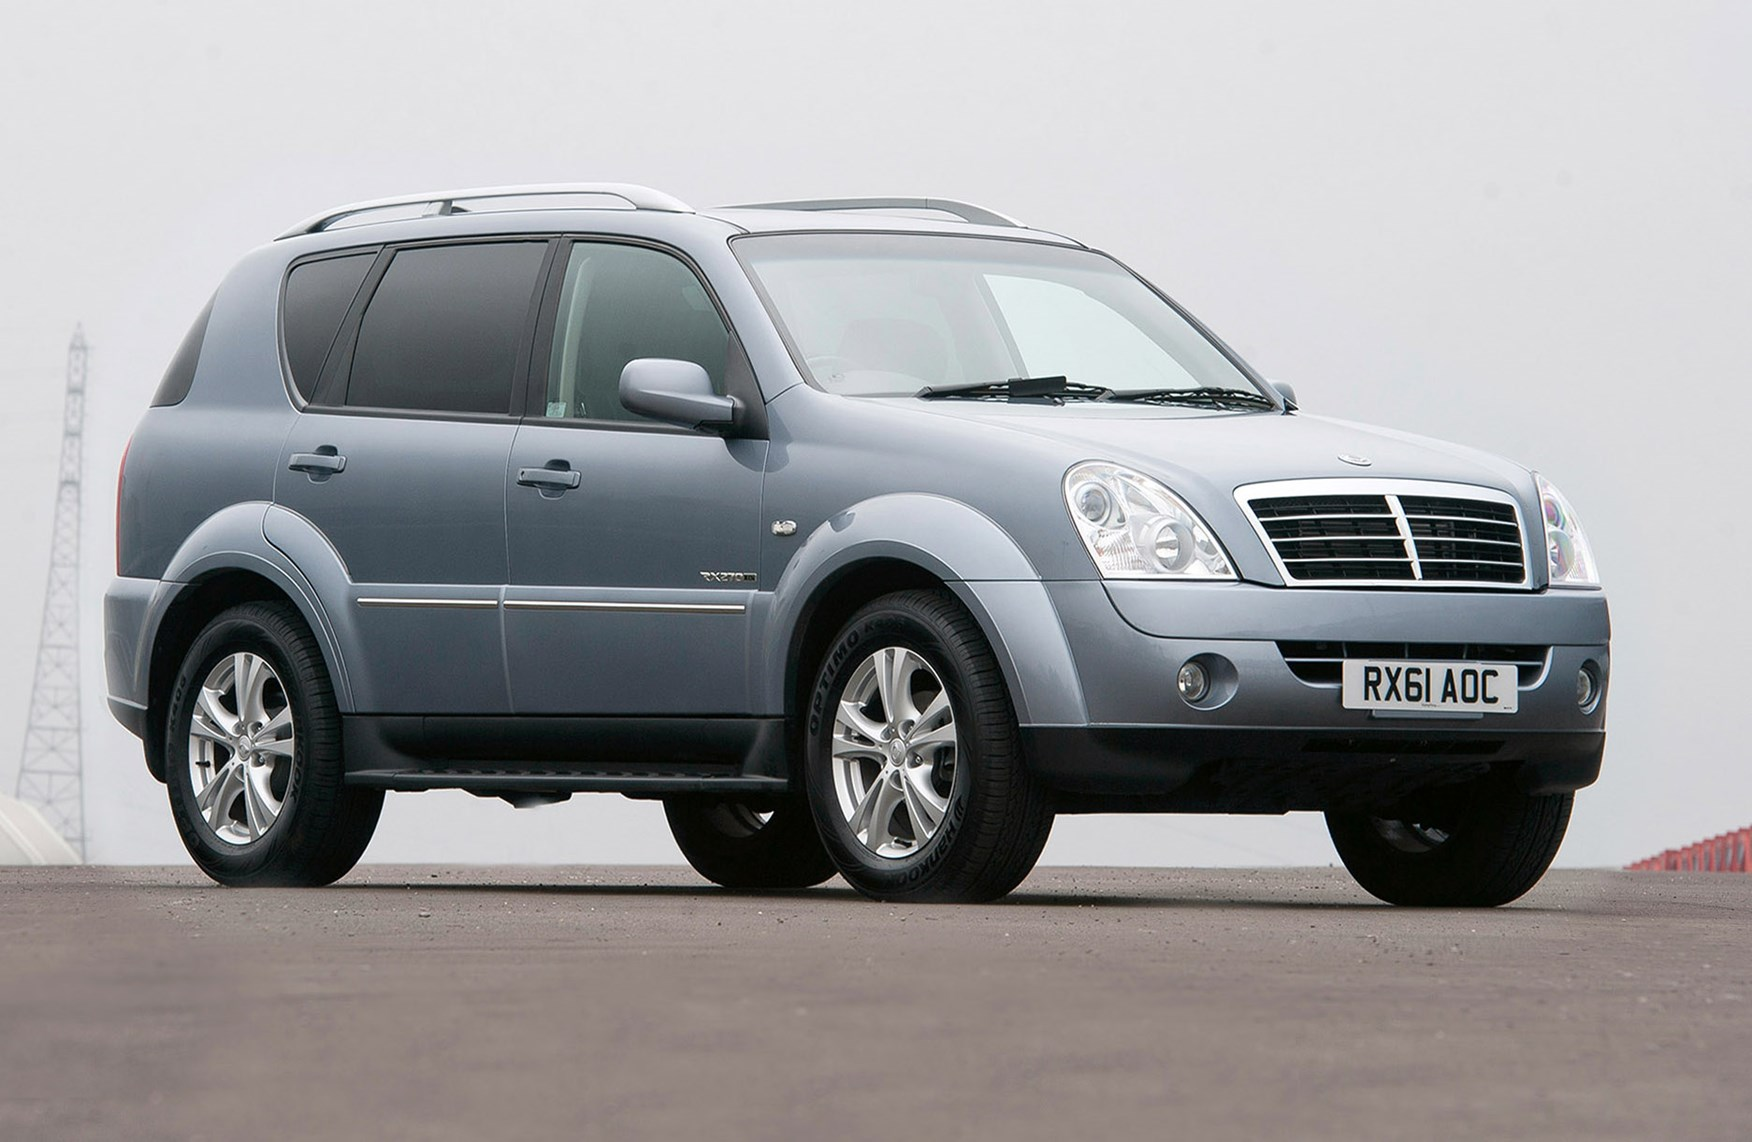 ssangyong rexton estate 2003 2013 photos parkers. Black Bedroom Furniture Sets. Home Design Ideas